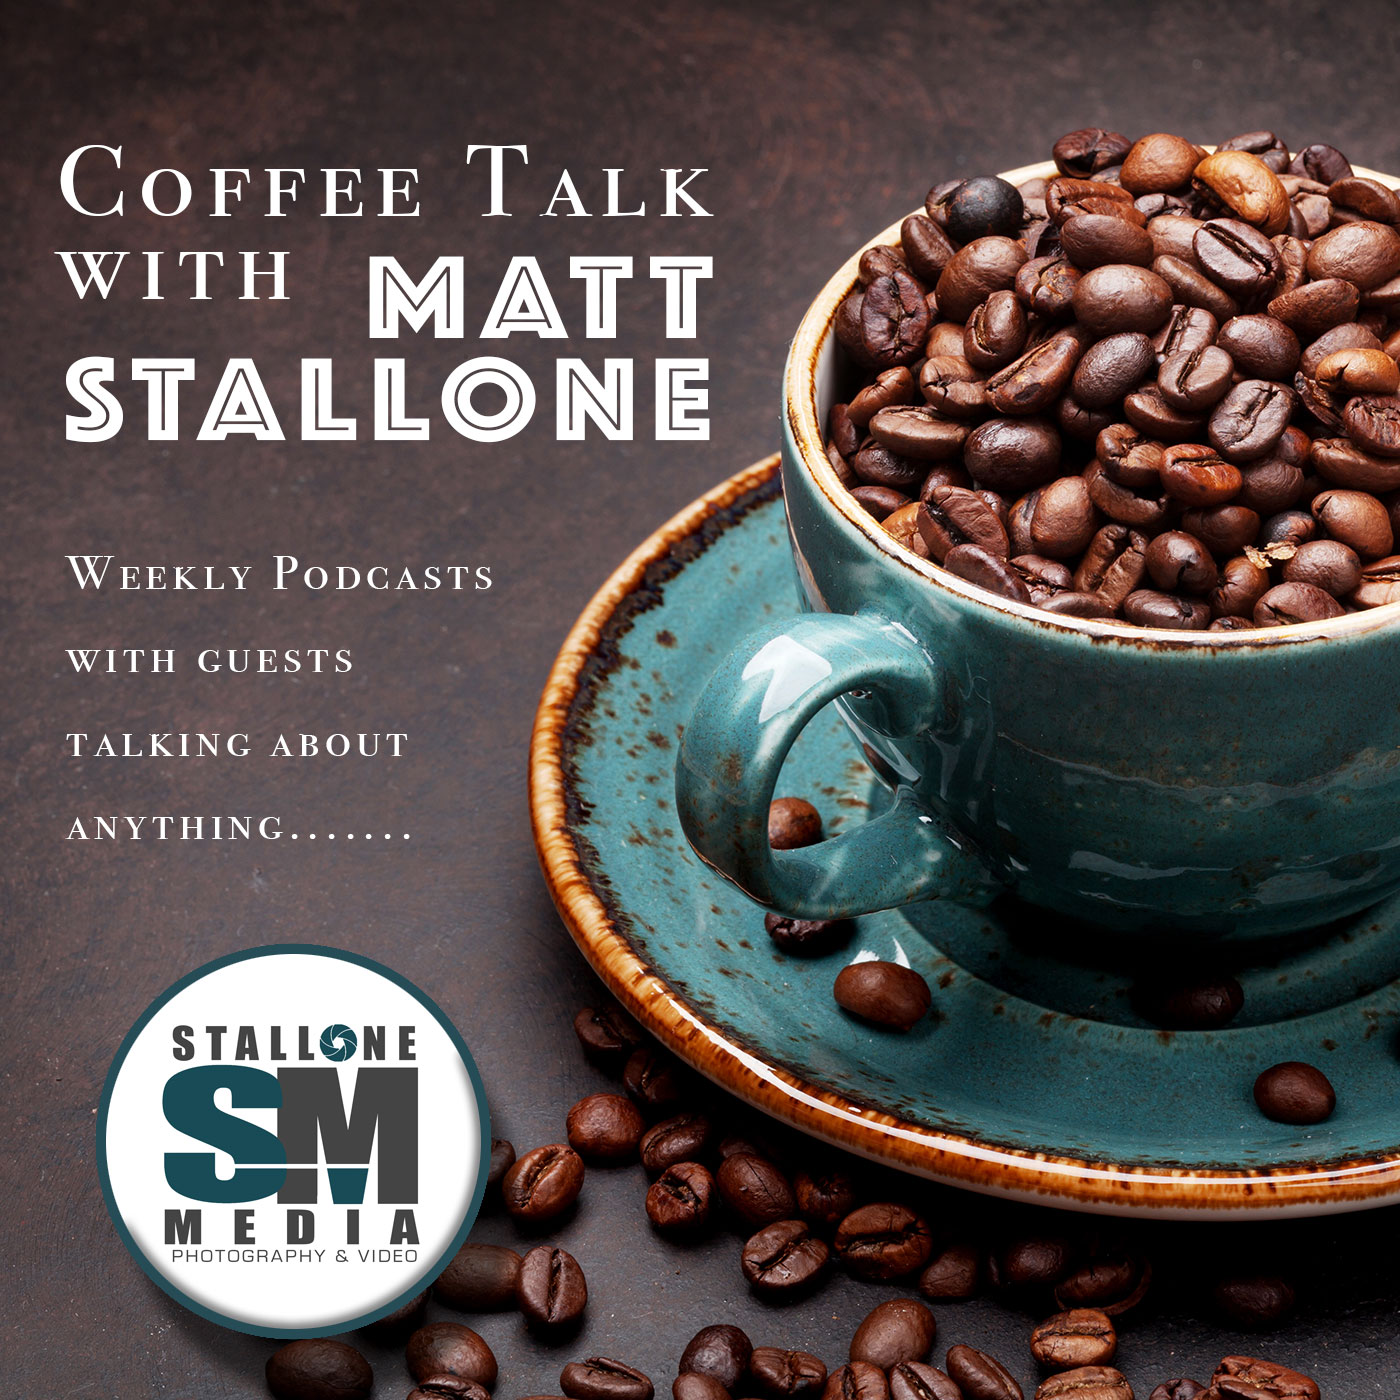 Coffee Talk With Stallone show art